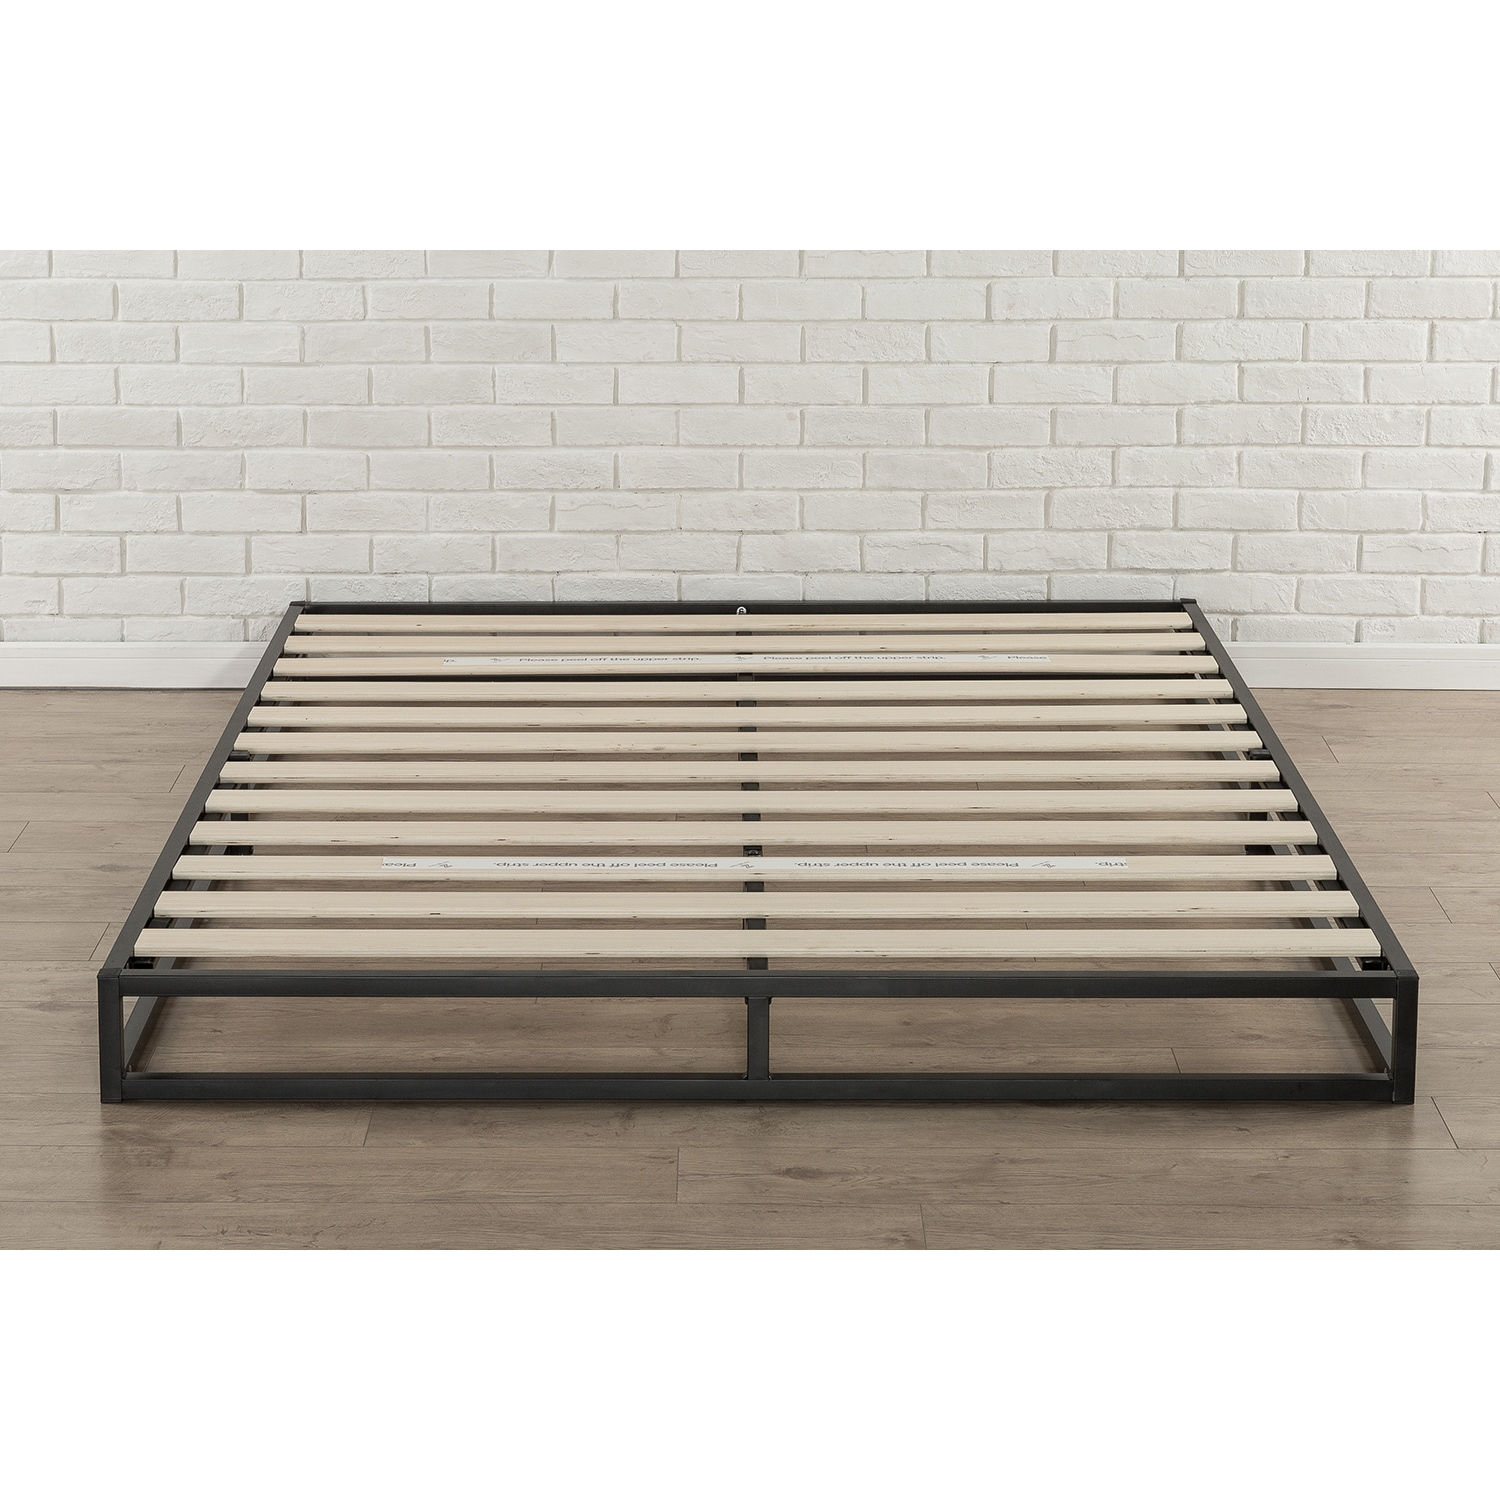 Shop Priage By Zinus 6 Inch Queen Size Platforma Low Profile Bed Frame On Sale Overstock 13455541